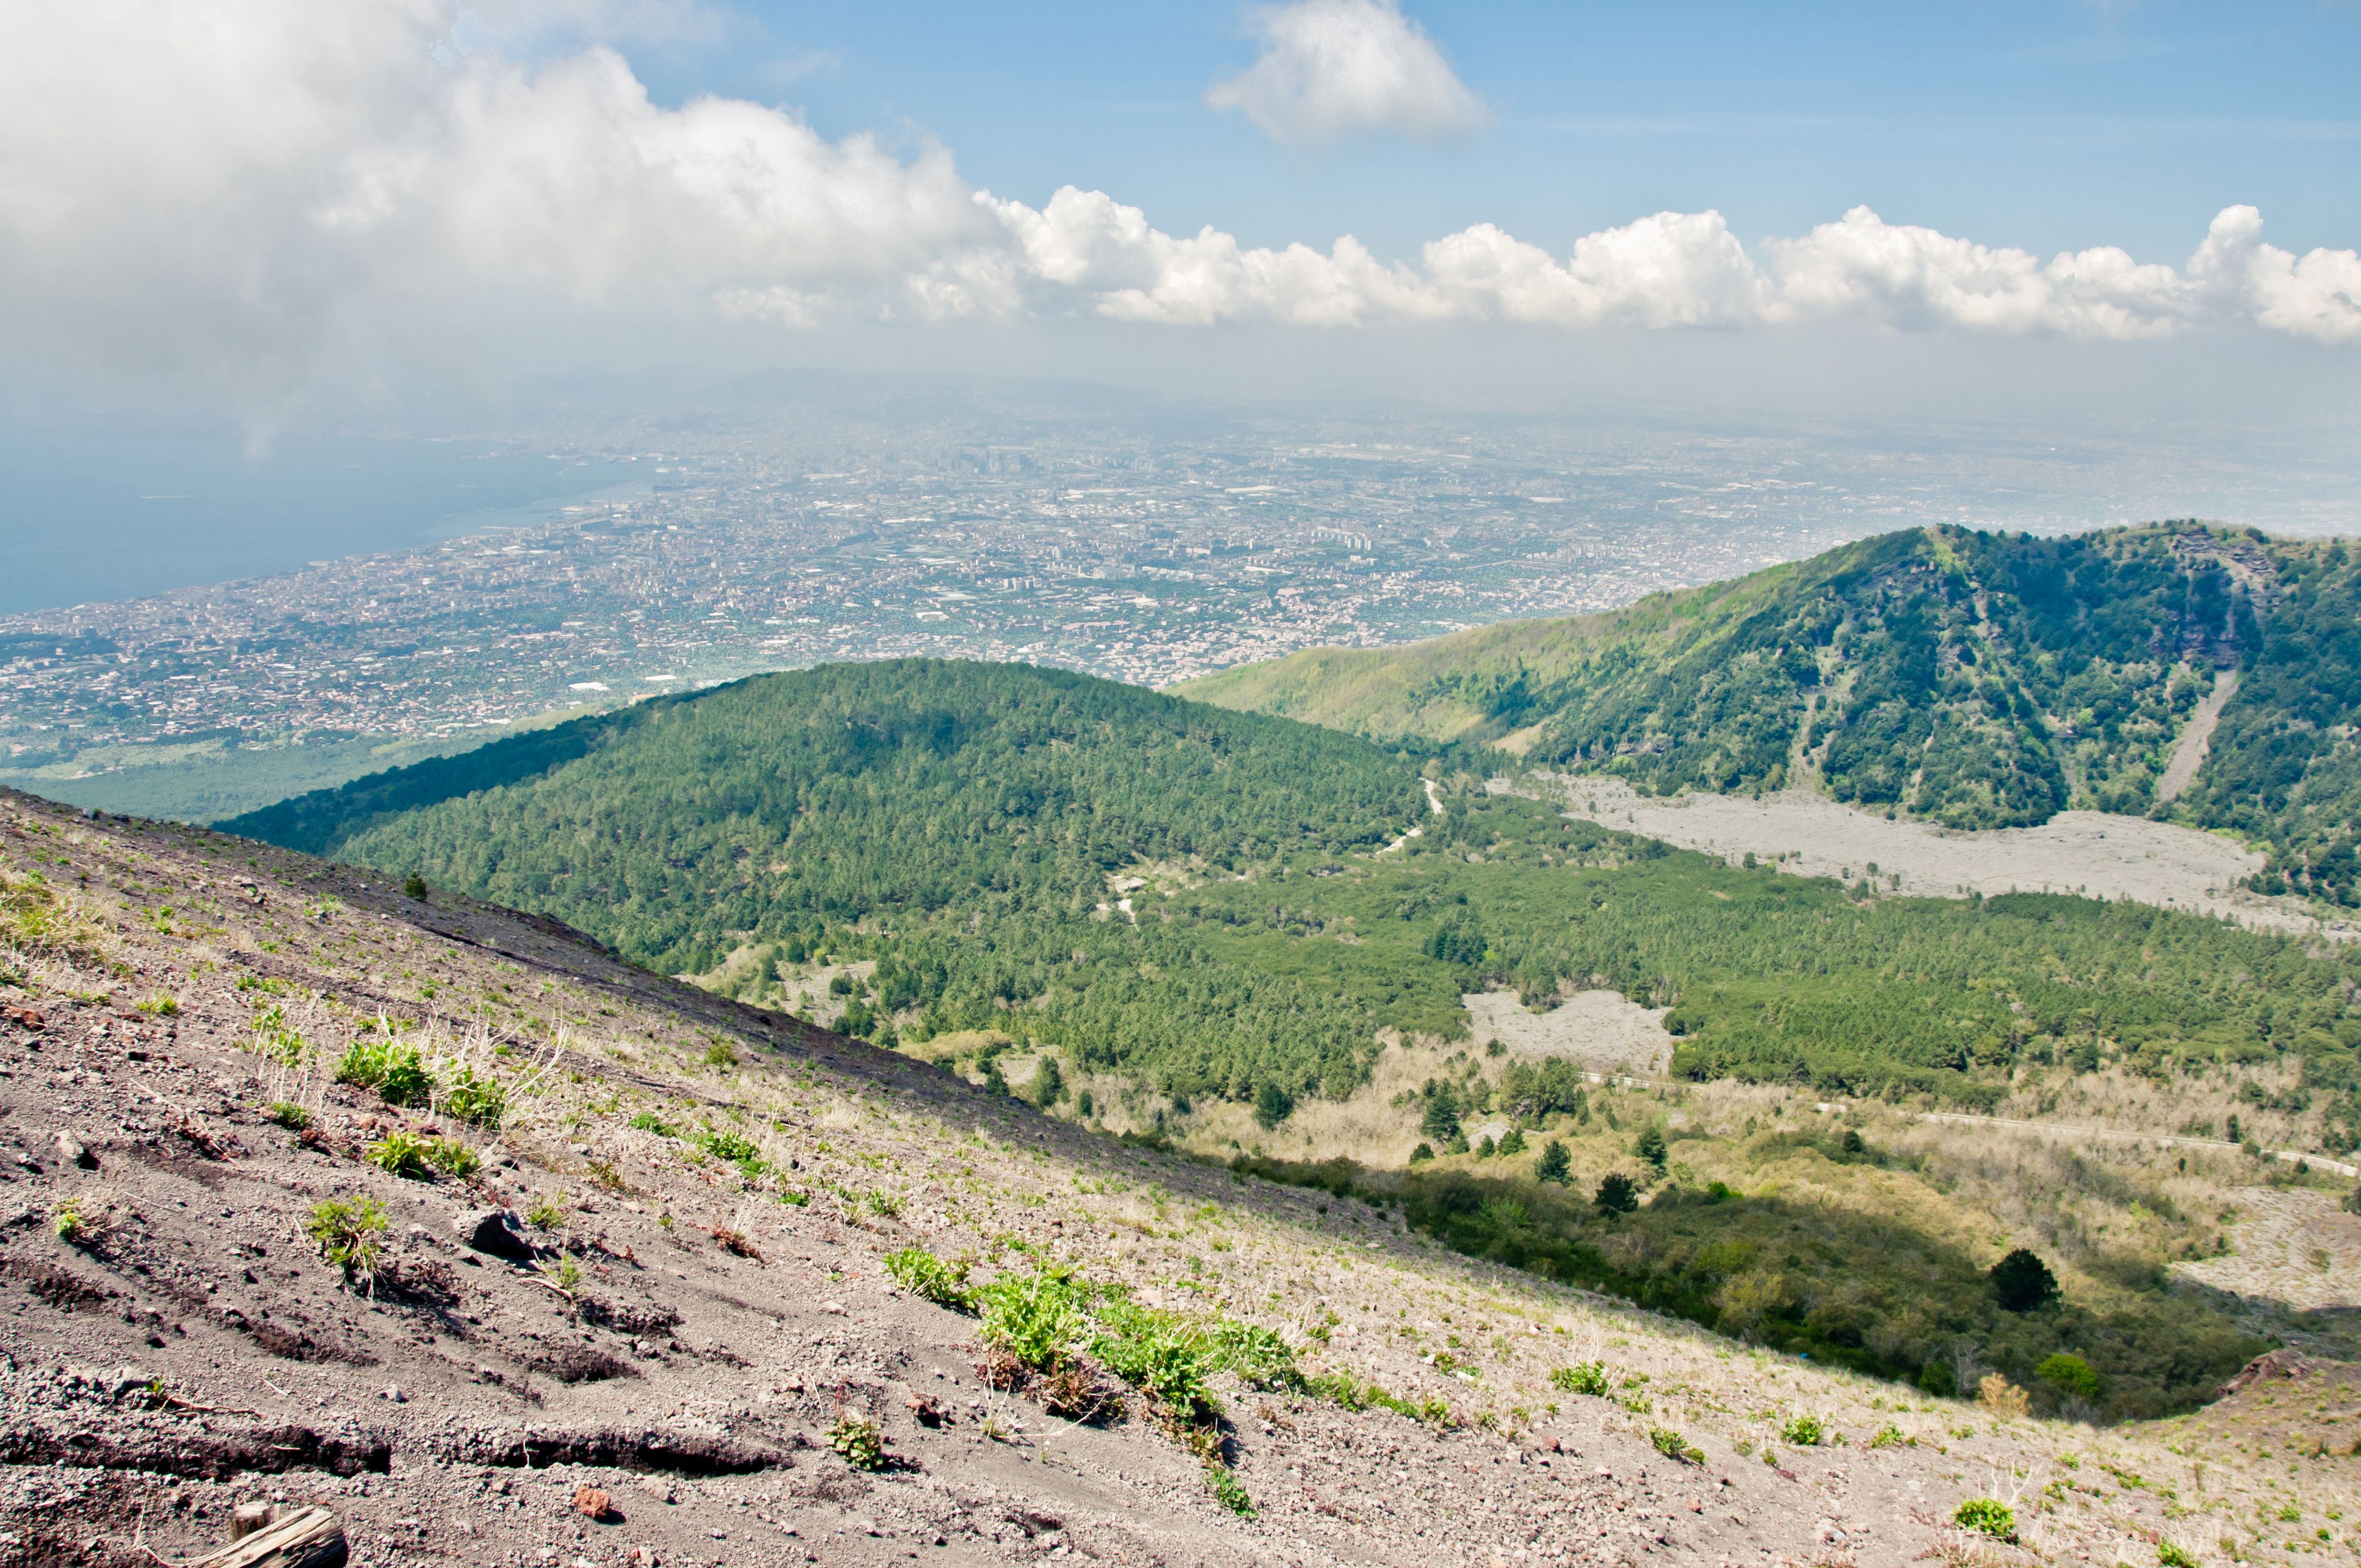 Naples View from Vesuvius volcano, Altitude, Sky, Nature, Panorama, HQ Photo